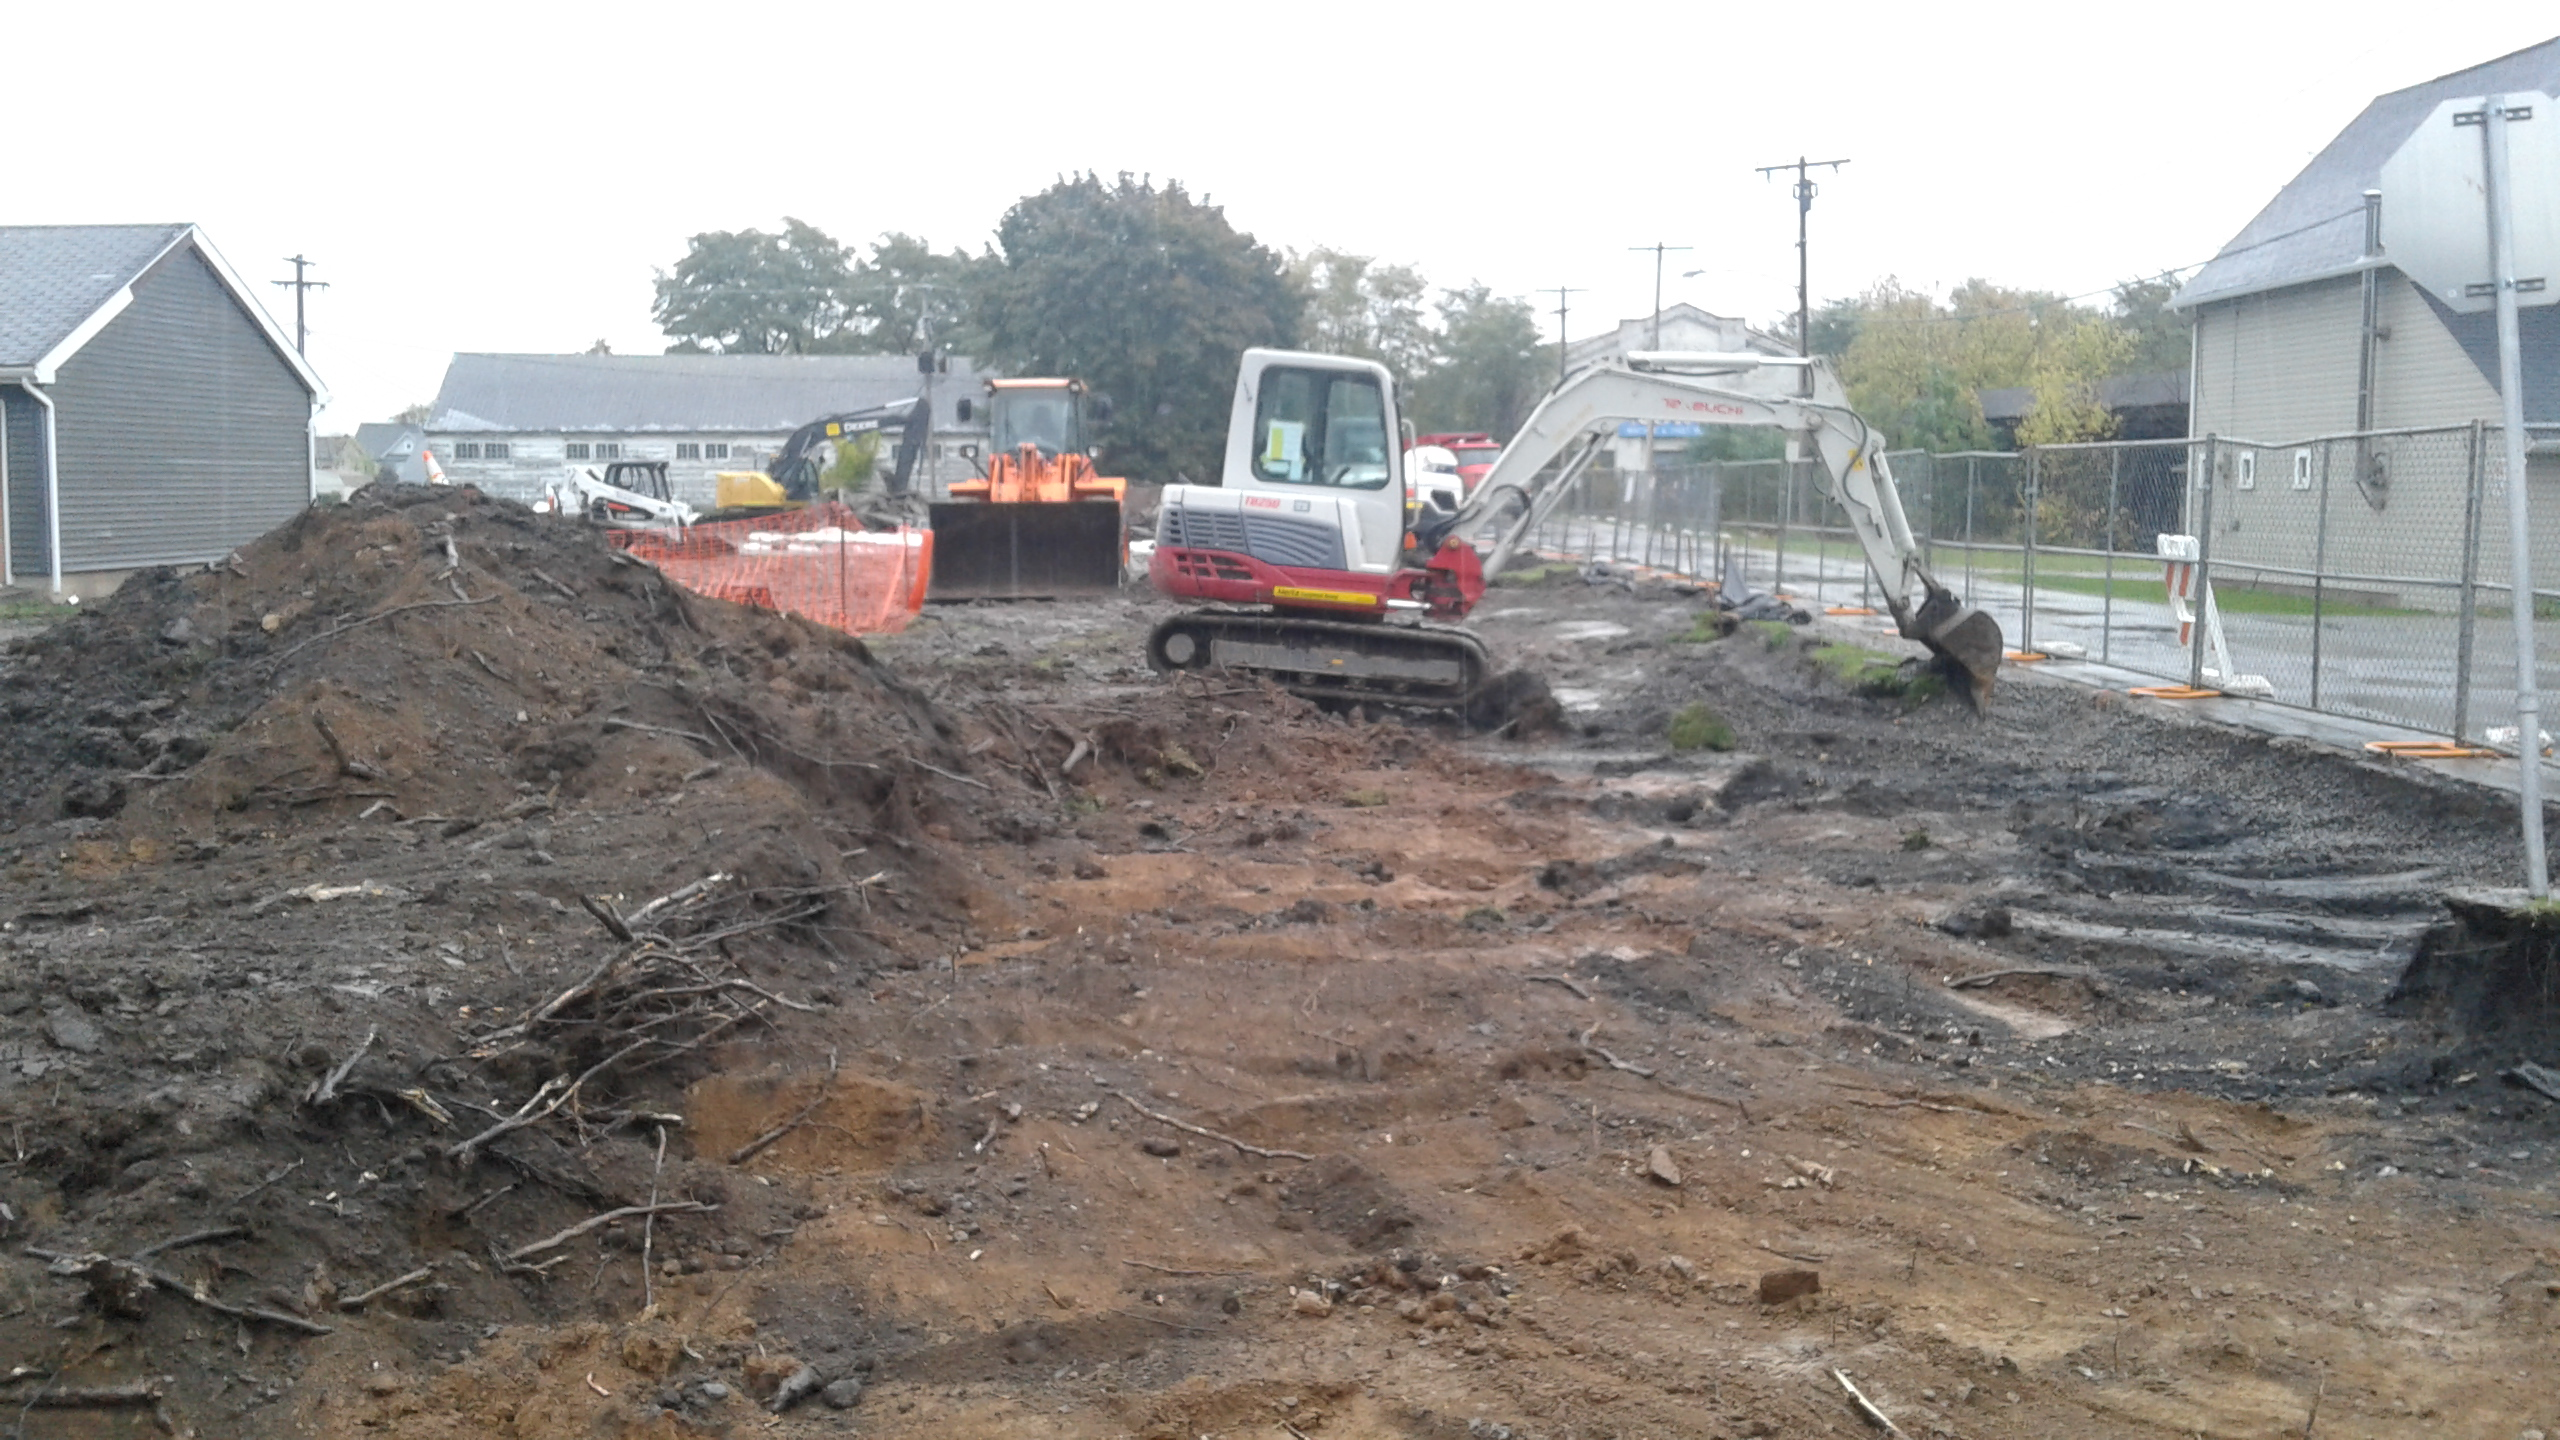 A backhoe excavates soil on Thursday, Oct. 27, 2016 in Middleport, N.Y., where the state has imposed a plan requiring FMC Corp. pay to remove arsenic-contaminated soil from outside more than 200 properties.  (Thomas J. Prohaska / The Buffalo News)